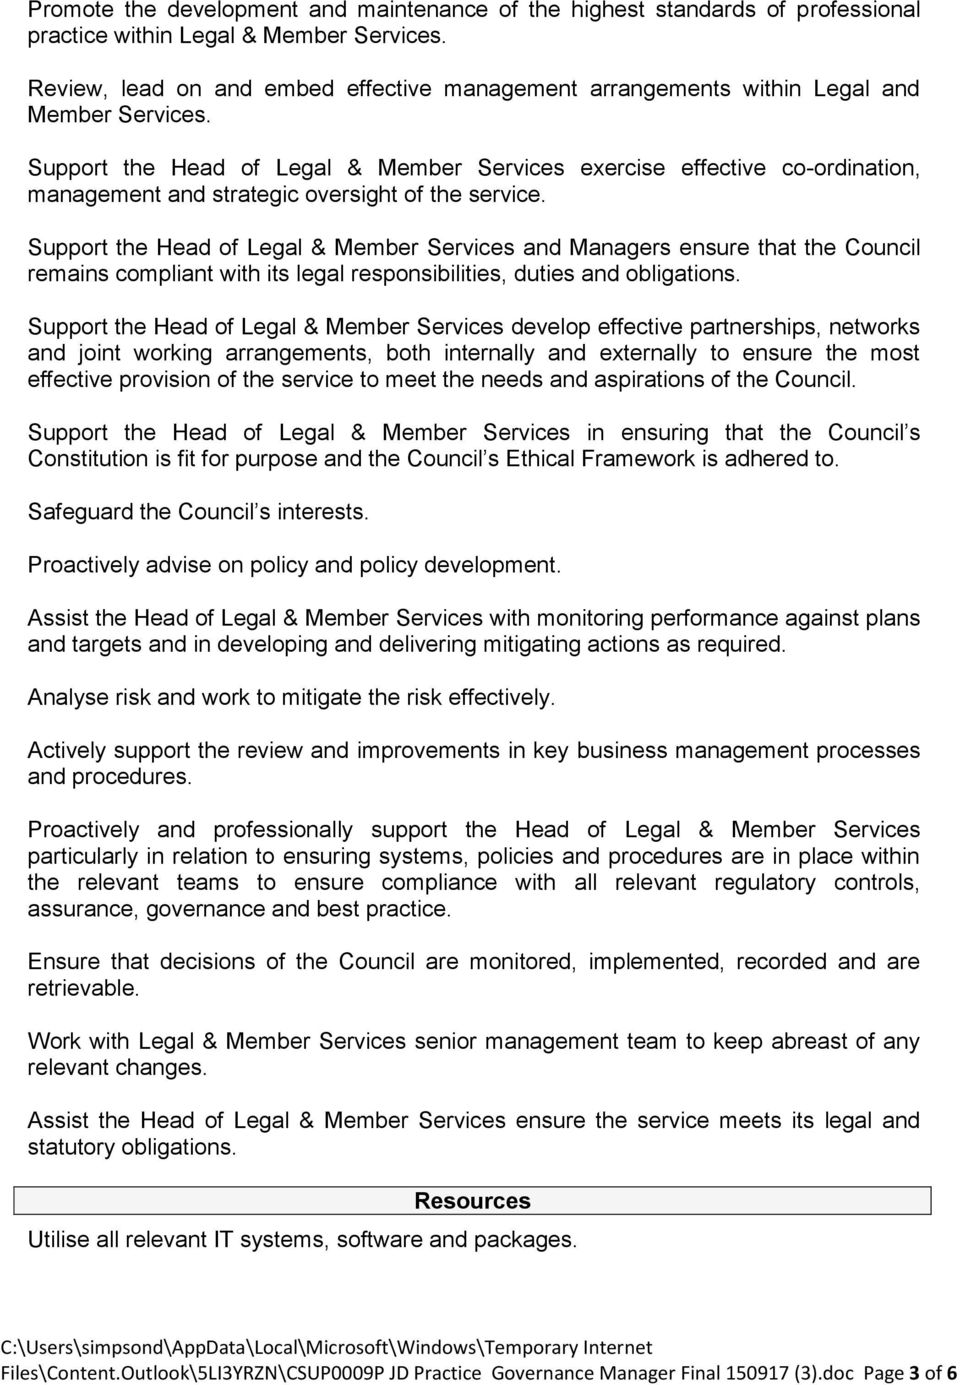 Support the Head of Legal & Member Services exercise effective co-ordination, management and strategic oversight of the service.